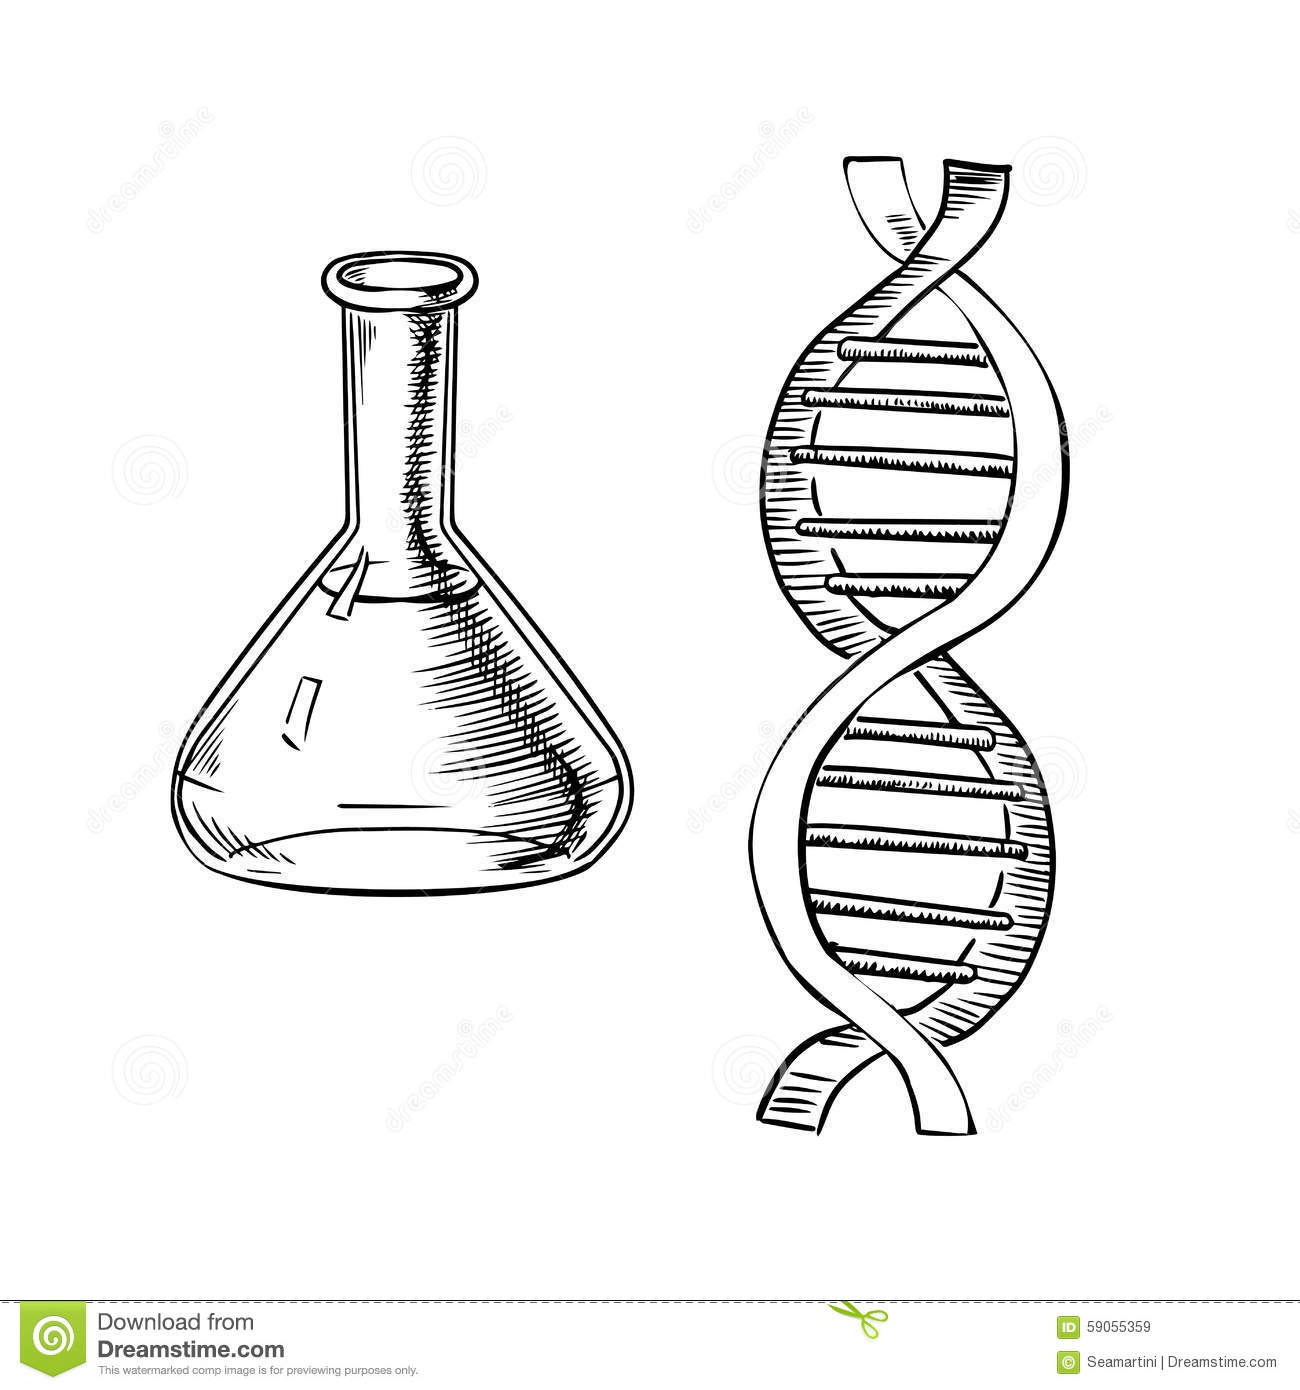 File Experimentieren 3 Material likewise Separation Techniques 39636404 besides Erlenmeyer Fiole Laboratoire 303336 likewise Viewthread also Science. on chemistry flask